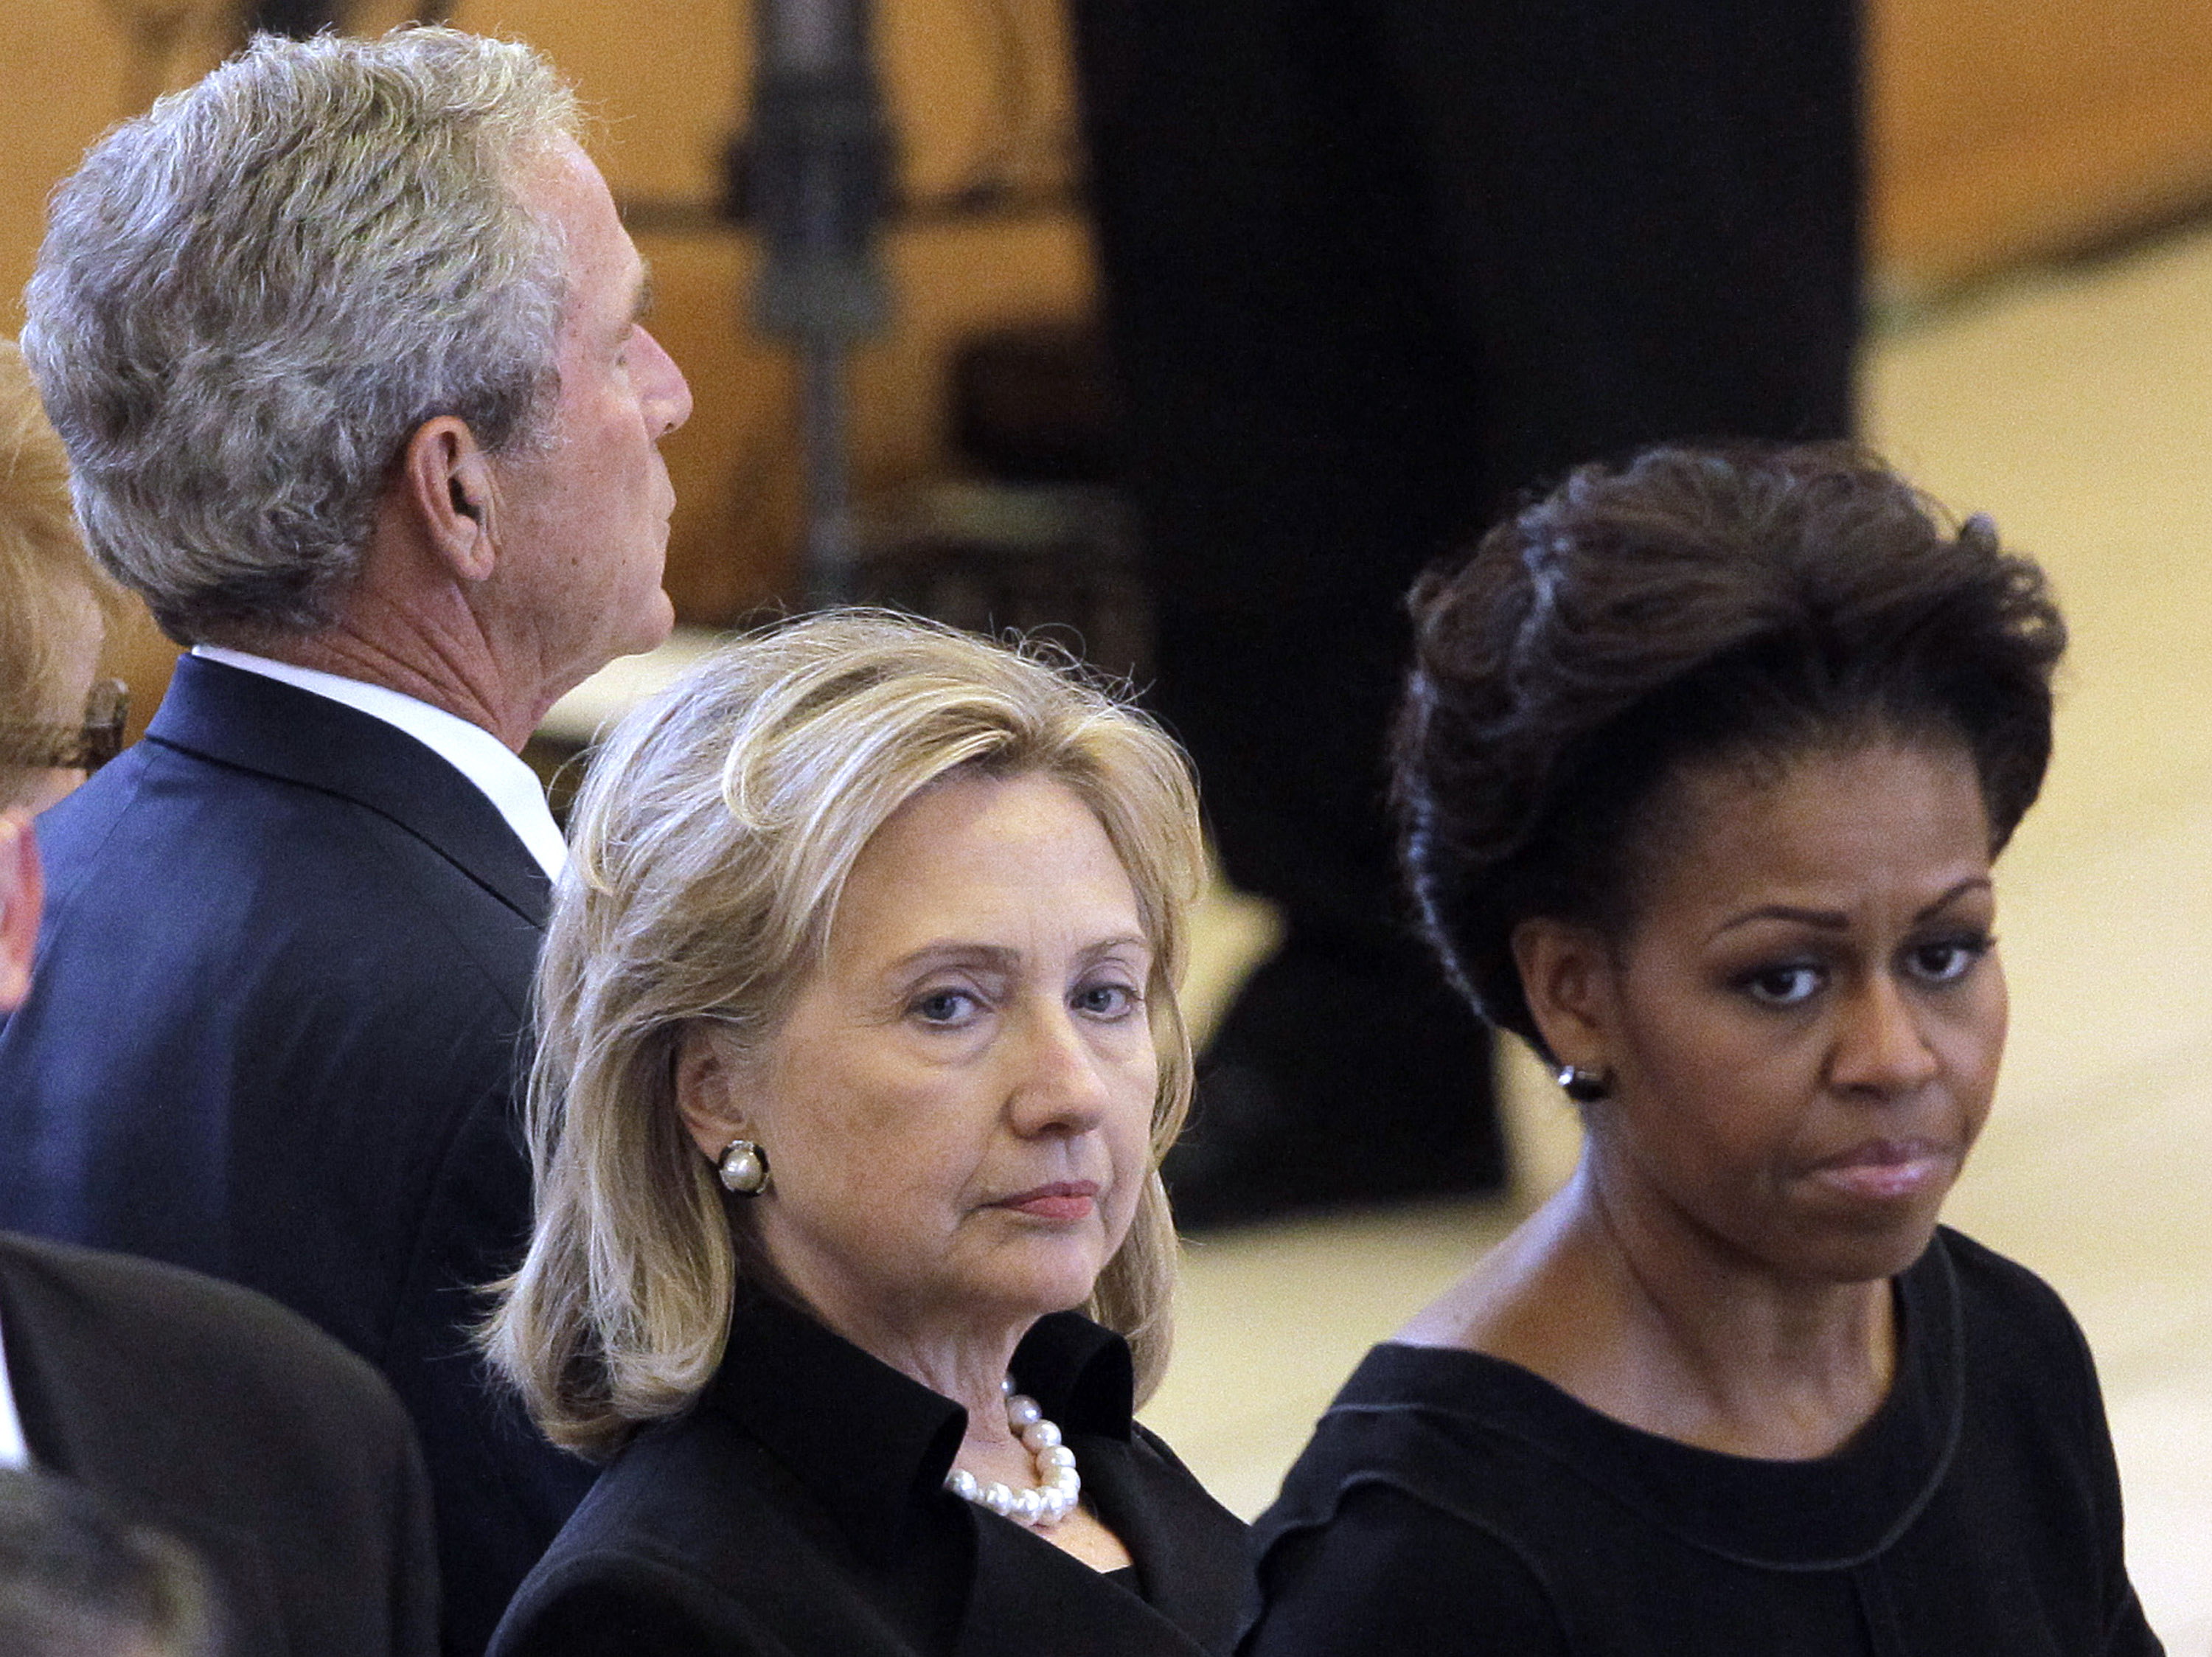 PALM DESERT, CA - JULY 12: (L-R) Former President George W. Bush, Secretary of State Hillary Rodham Clinton and first lady Michelle Obama attend the funeral for former first lady Betty Ford at St. Margaret's Episcopal Church July 12, 2011 in Palm Desert, California. Family, dignitaries, including first lady Michelle Obama, Secretary of State Hillary Rodham Clinton and former President Bill Clinton attended the service at St. Margaret's Episcopal Church, during which former first lady Rosalynn Carter and journalist Cokie Roberts presented eulogies for the outspoken Ford, who will be buried alongside her husband, former President Gerald R. Ford, in Grand Rapids, Michigan following a second service July 14. (Photo by Jae C. Hong-Pool/Getty Images)